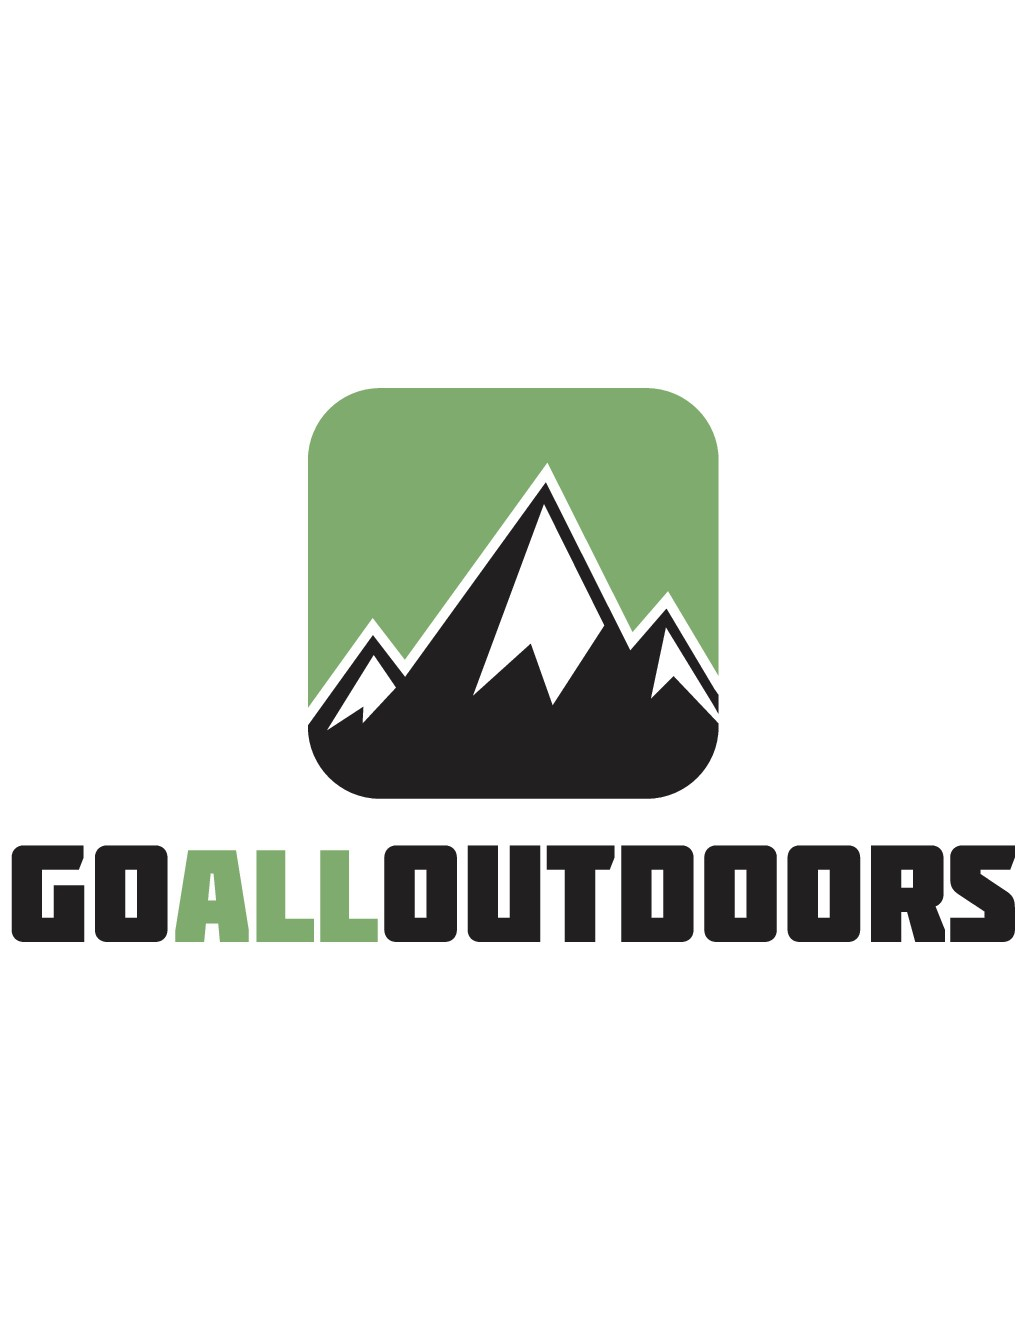 Design a logo with mountains for an outdoors website to help people get outside and stay active.